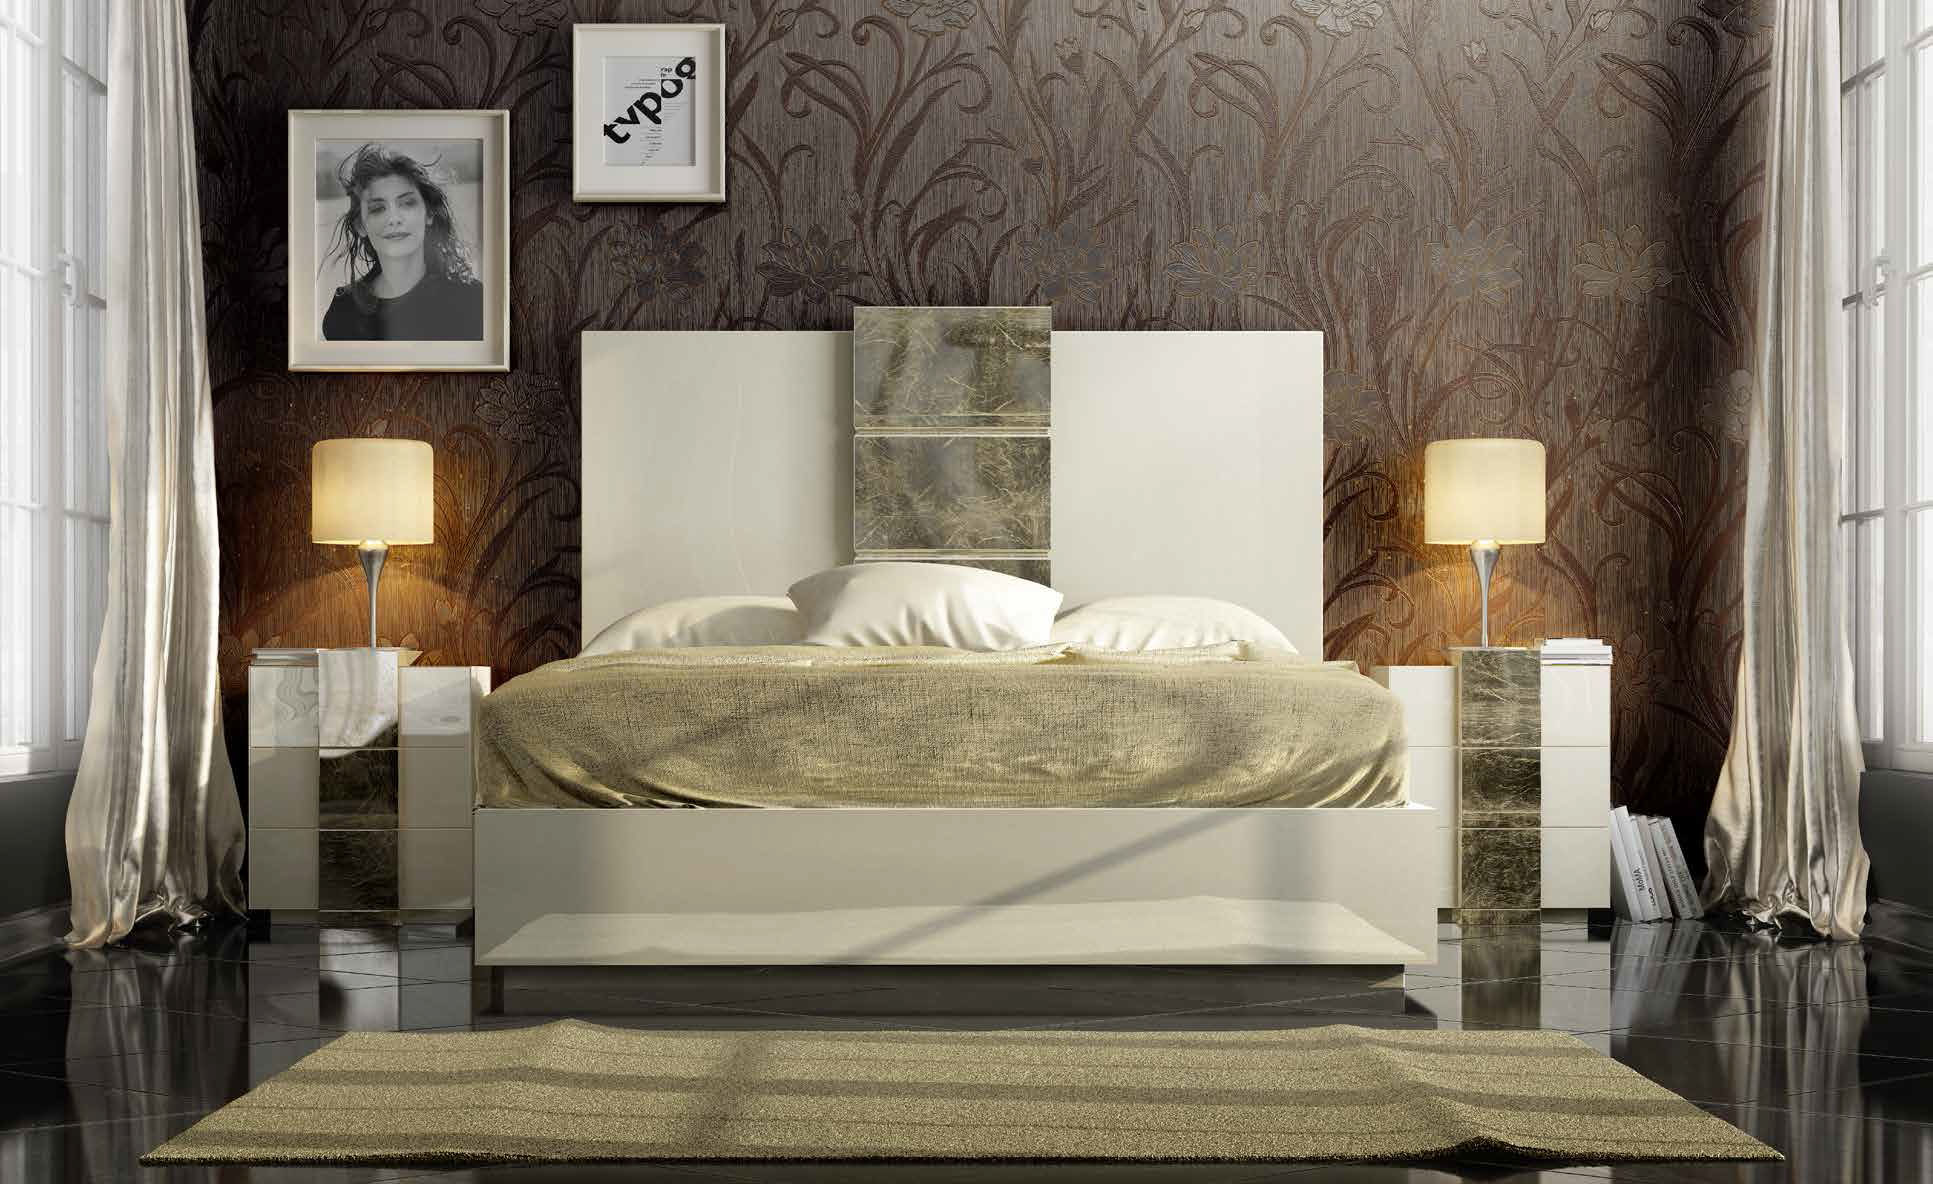 Decovarte bedroom D13